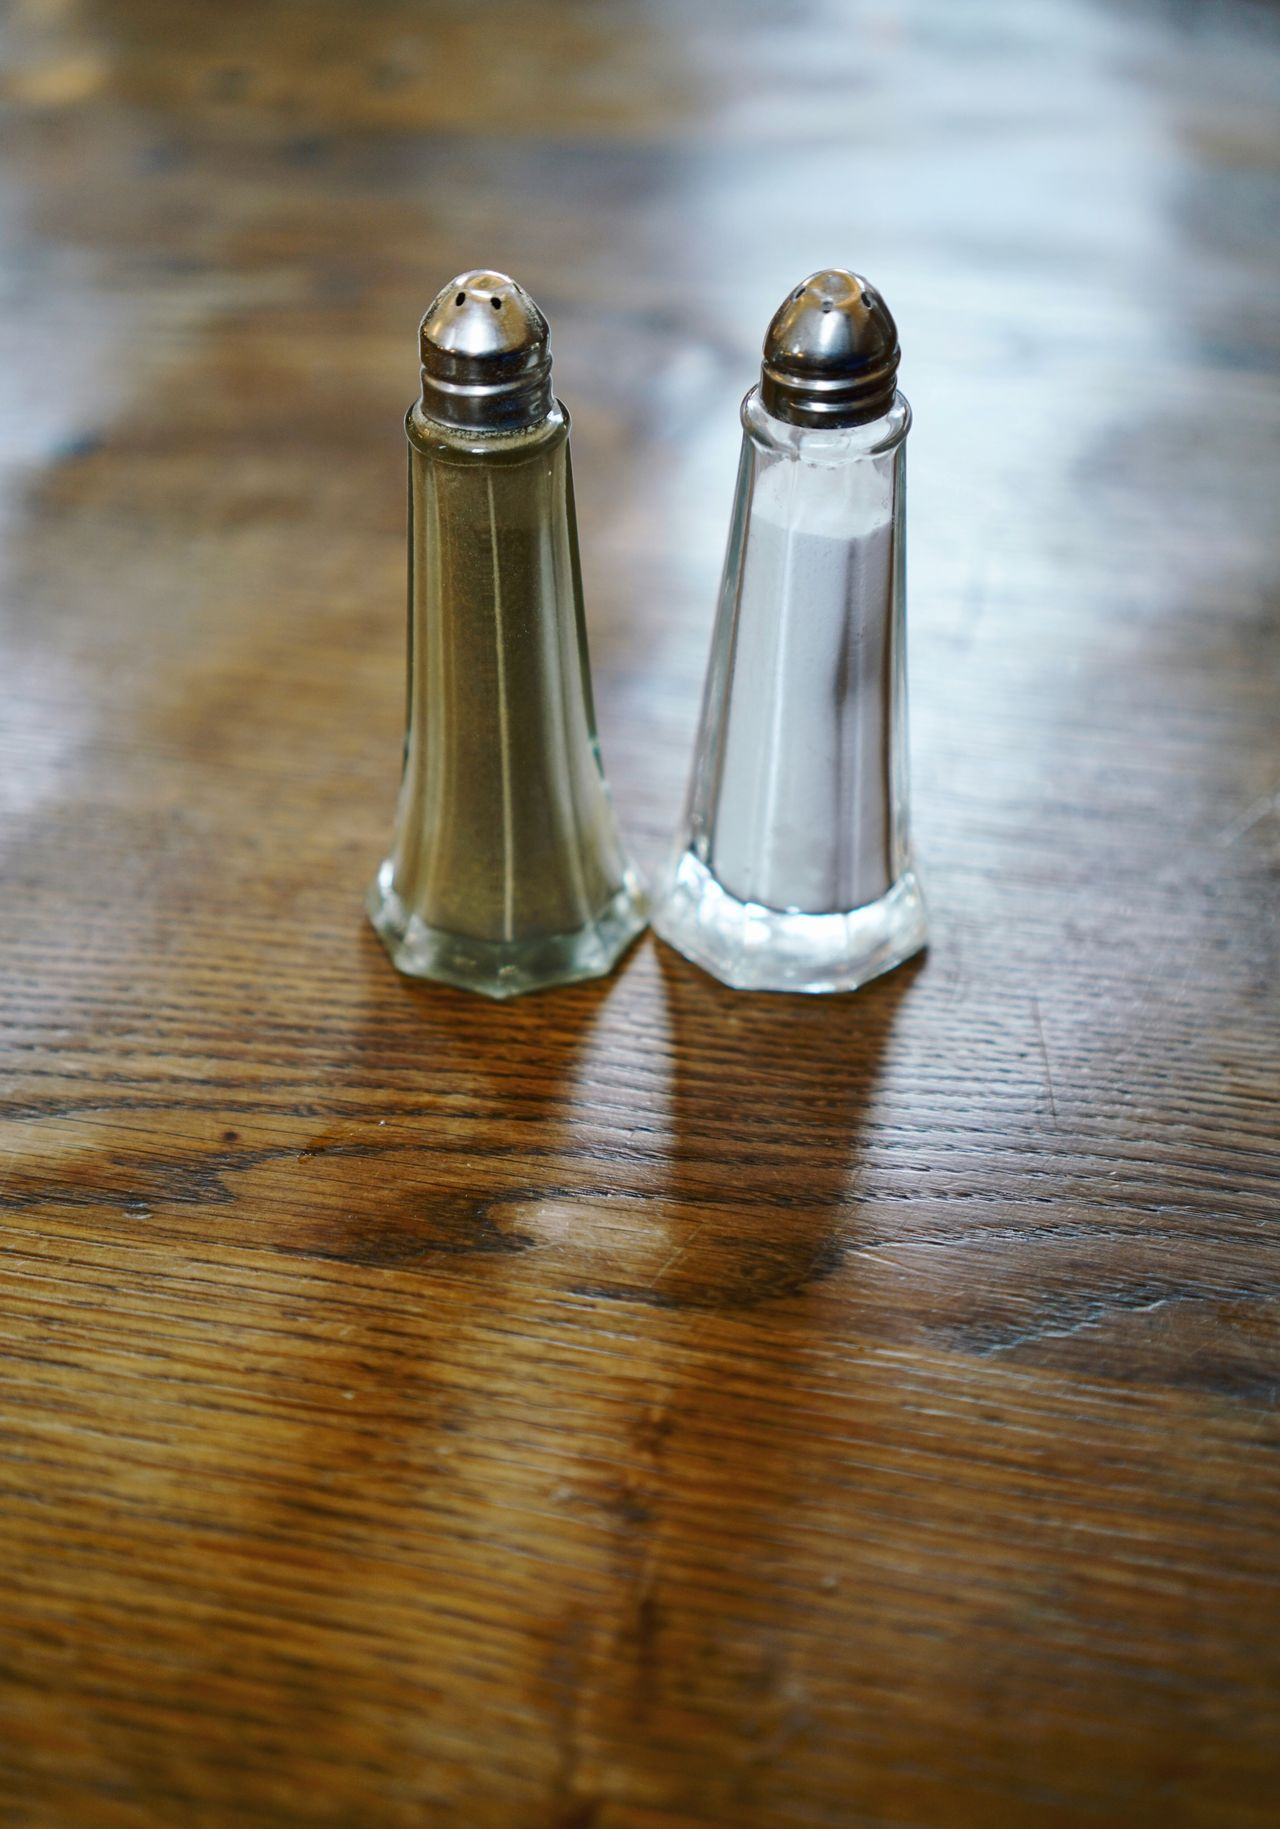 Salt and Pepper on old wood table Pepper Shaker Salt Shaker Pepper - Seasoning Salt - Seasoning Table High Angle View Wood - Material Indoors  Food No People Close-up